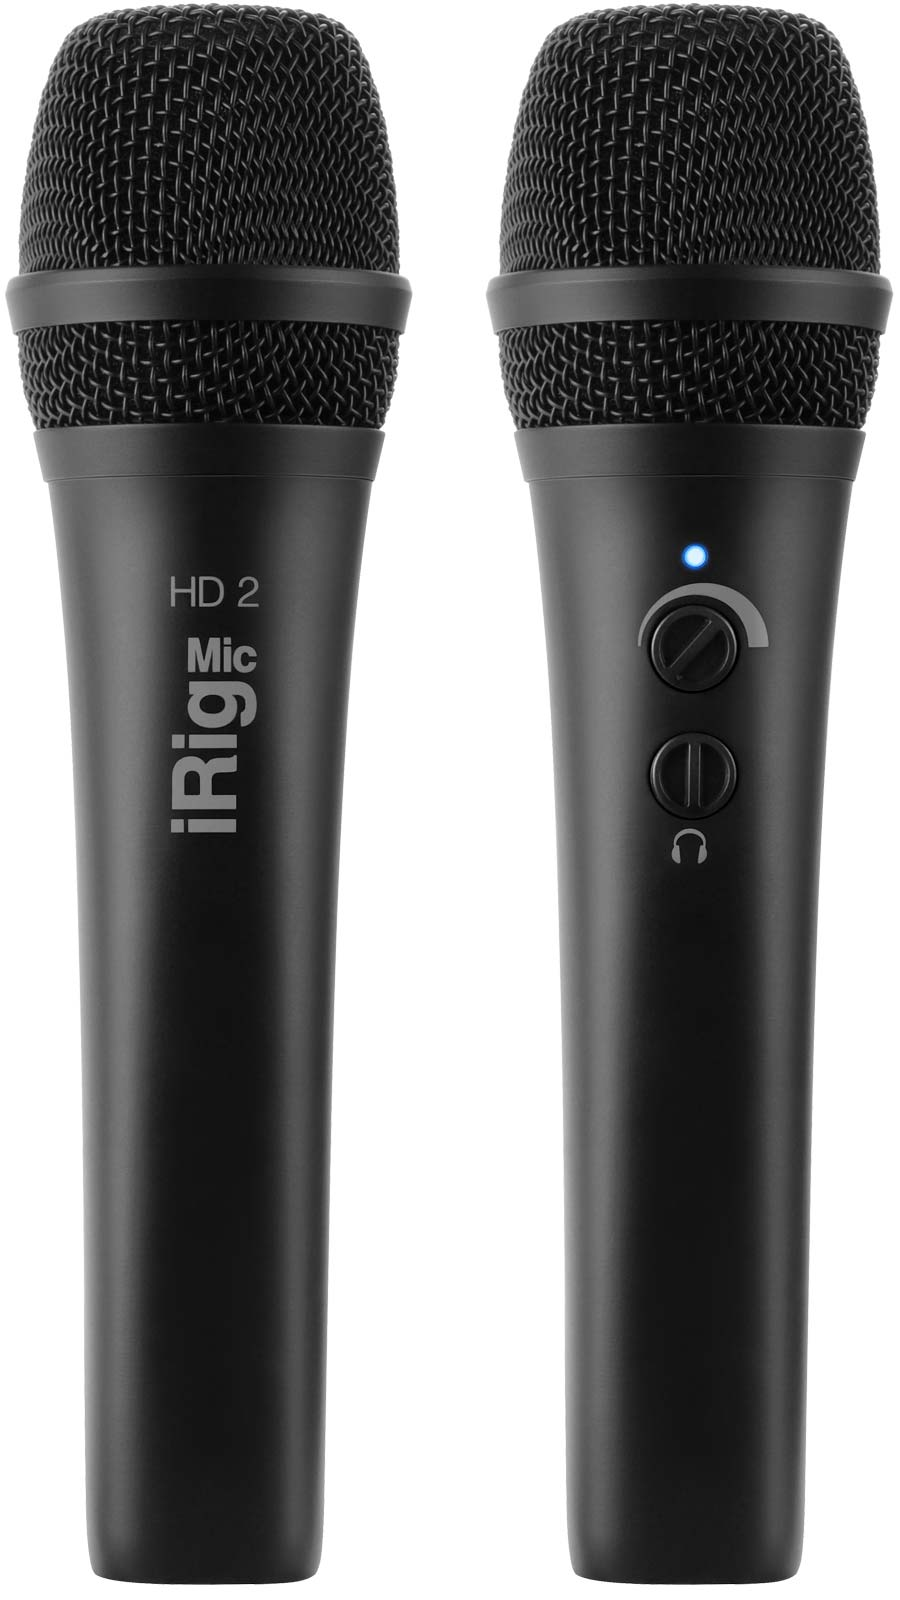 IRIG MIC HD2-High-Quality Digital Handheld Microphone